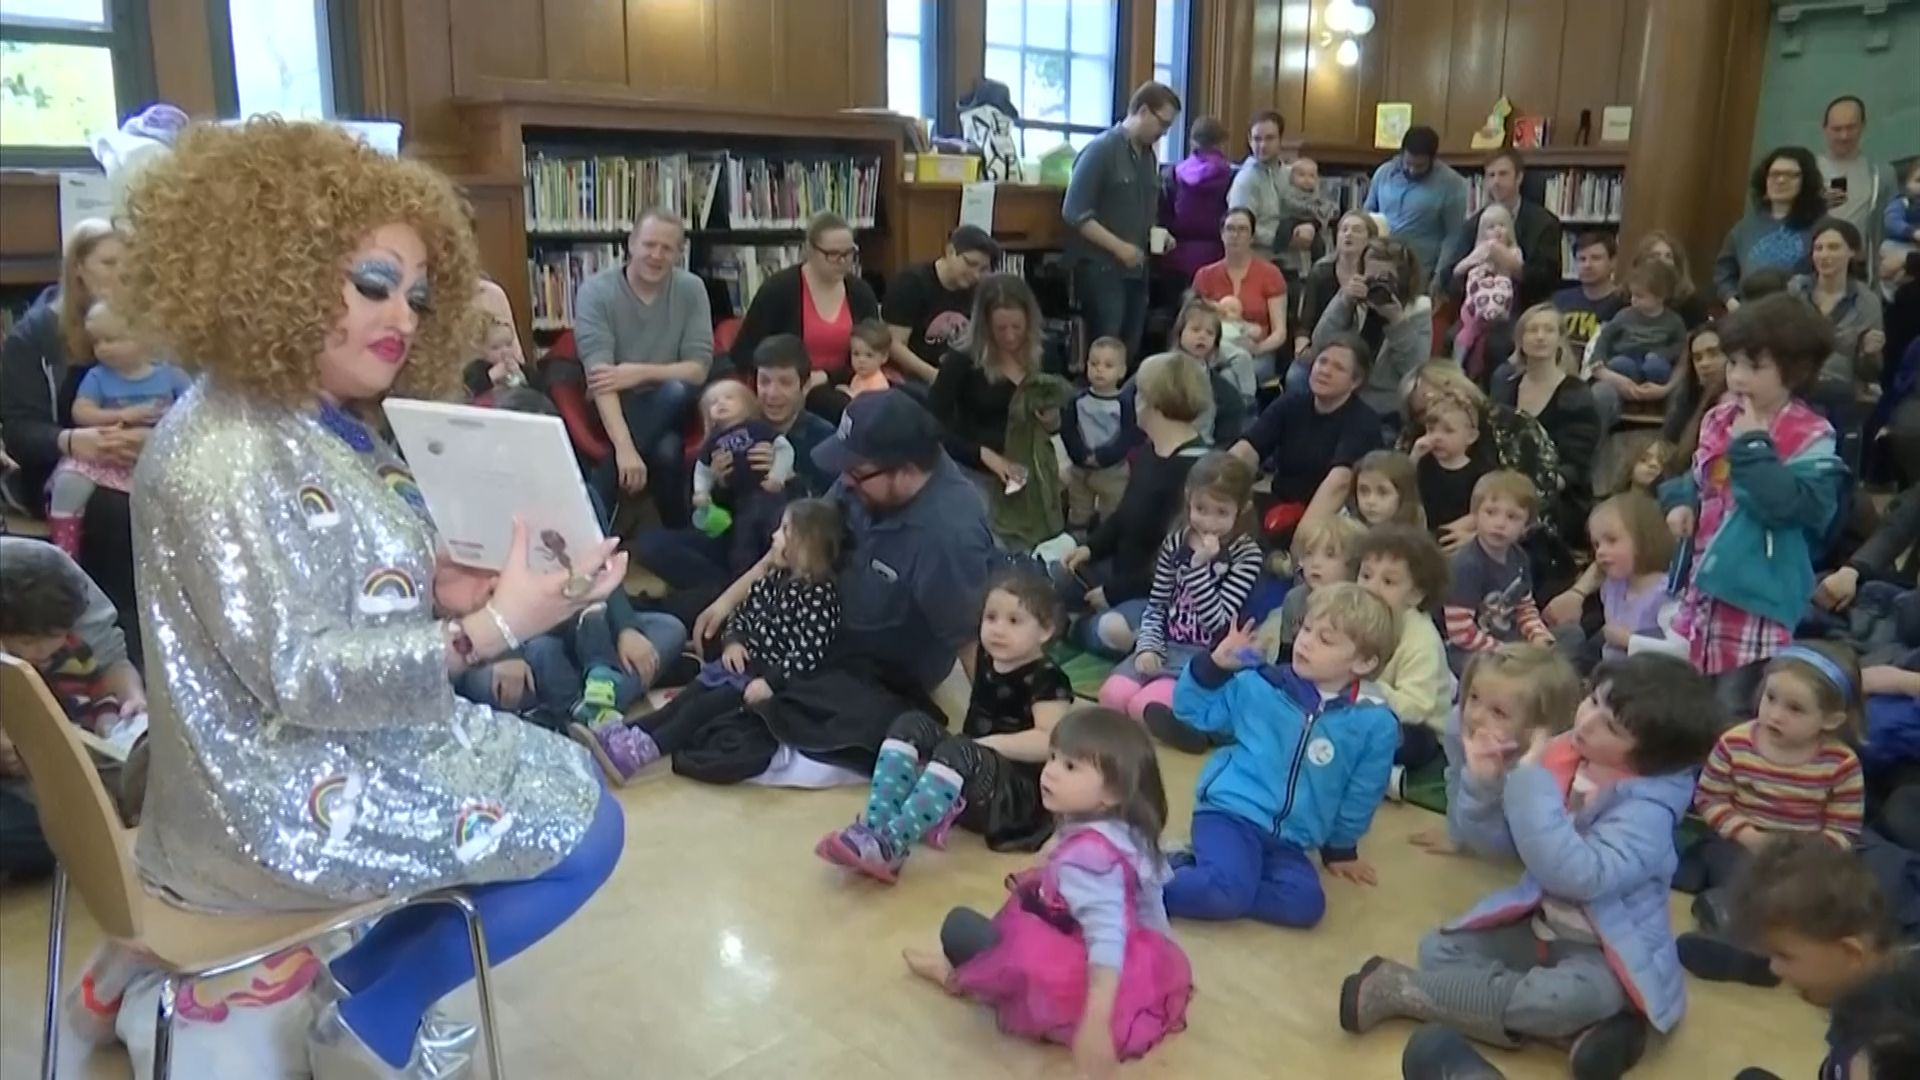 The Brooklyn Public Library holds Drag Queen Story Hour once a month